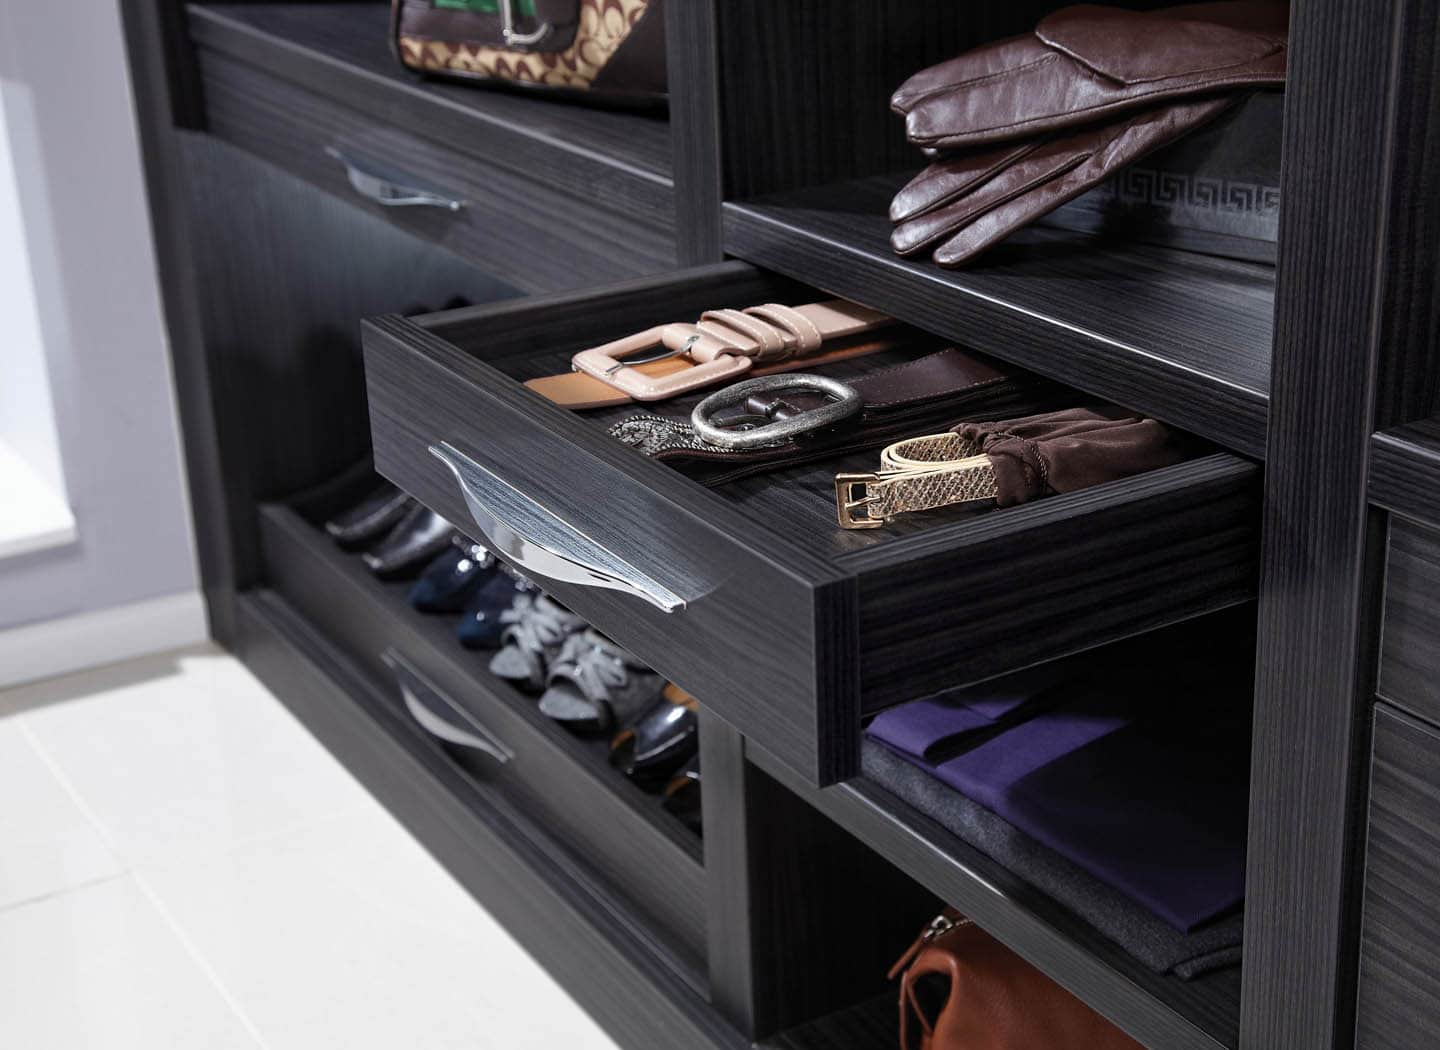 Accessory drawer in detail in Aura Black